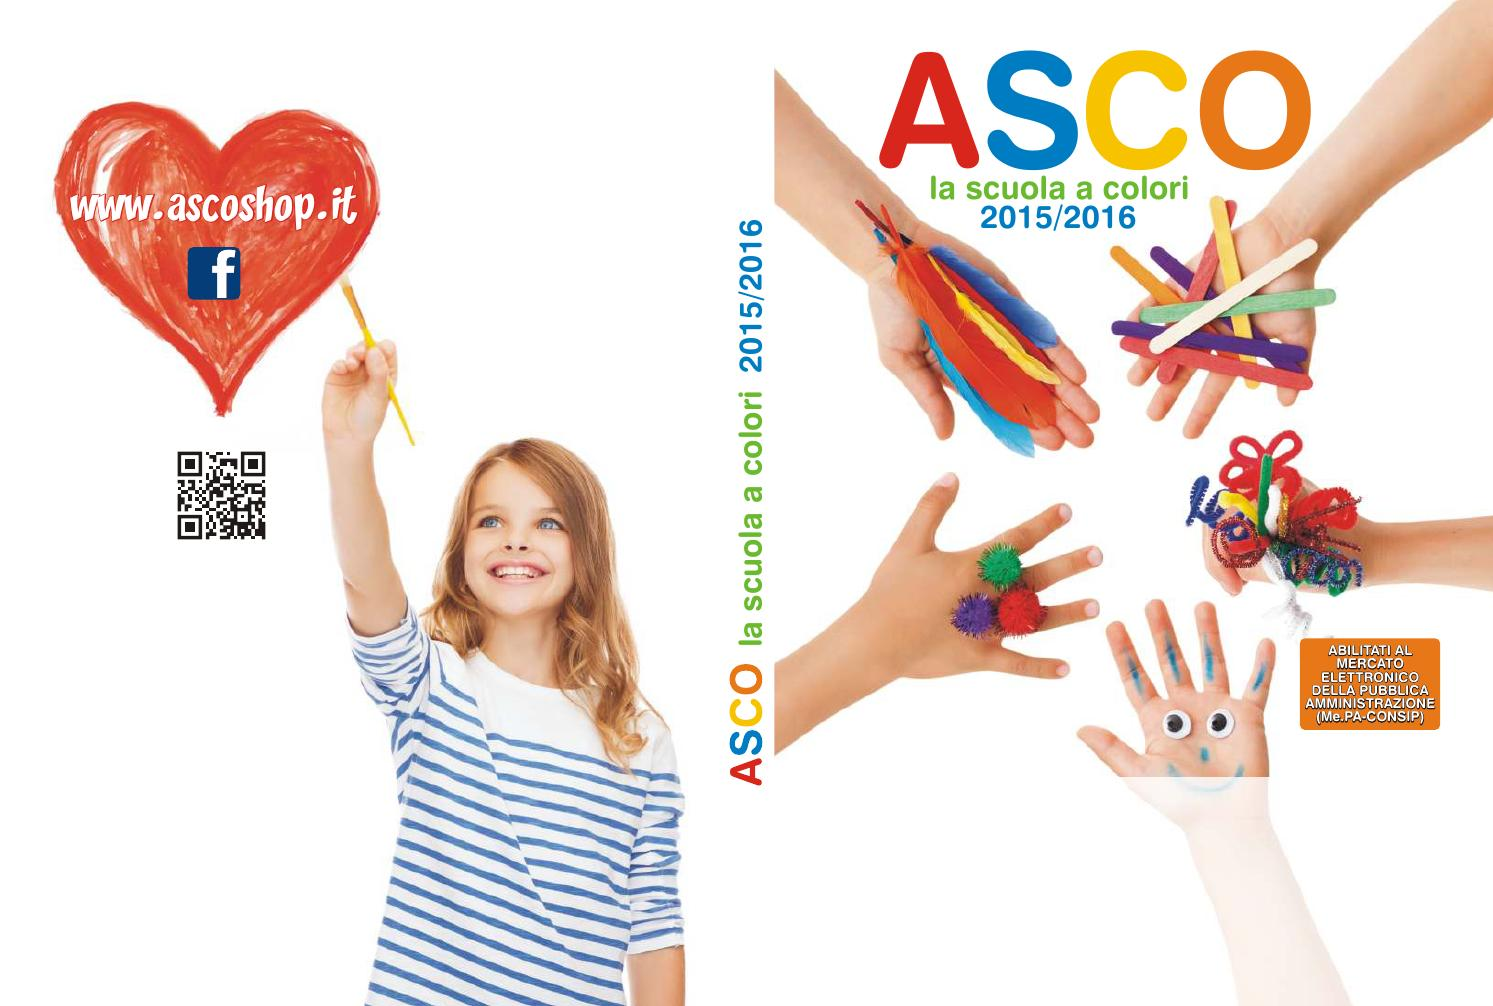 Catalogo Asco 2014-1015 by Publidesign - issuu 77fb16f6d011